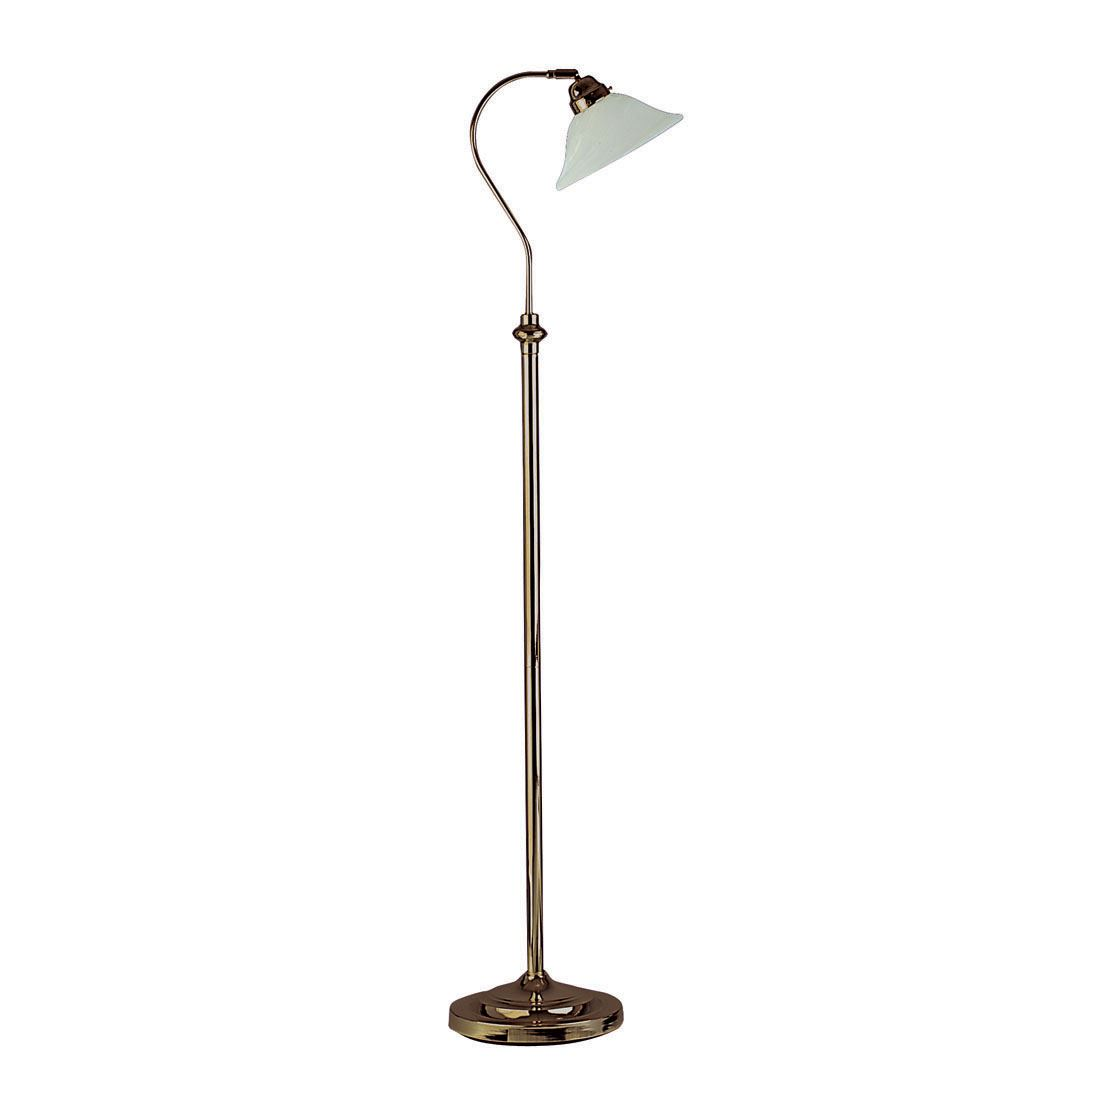 Adjustable Floor Lamp - Antique Brass Complete With Scavo Glass